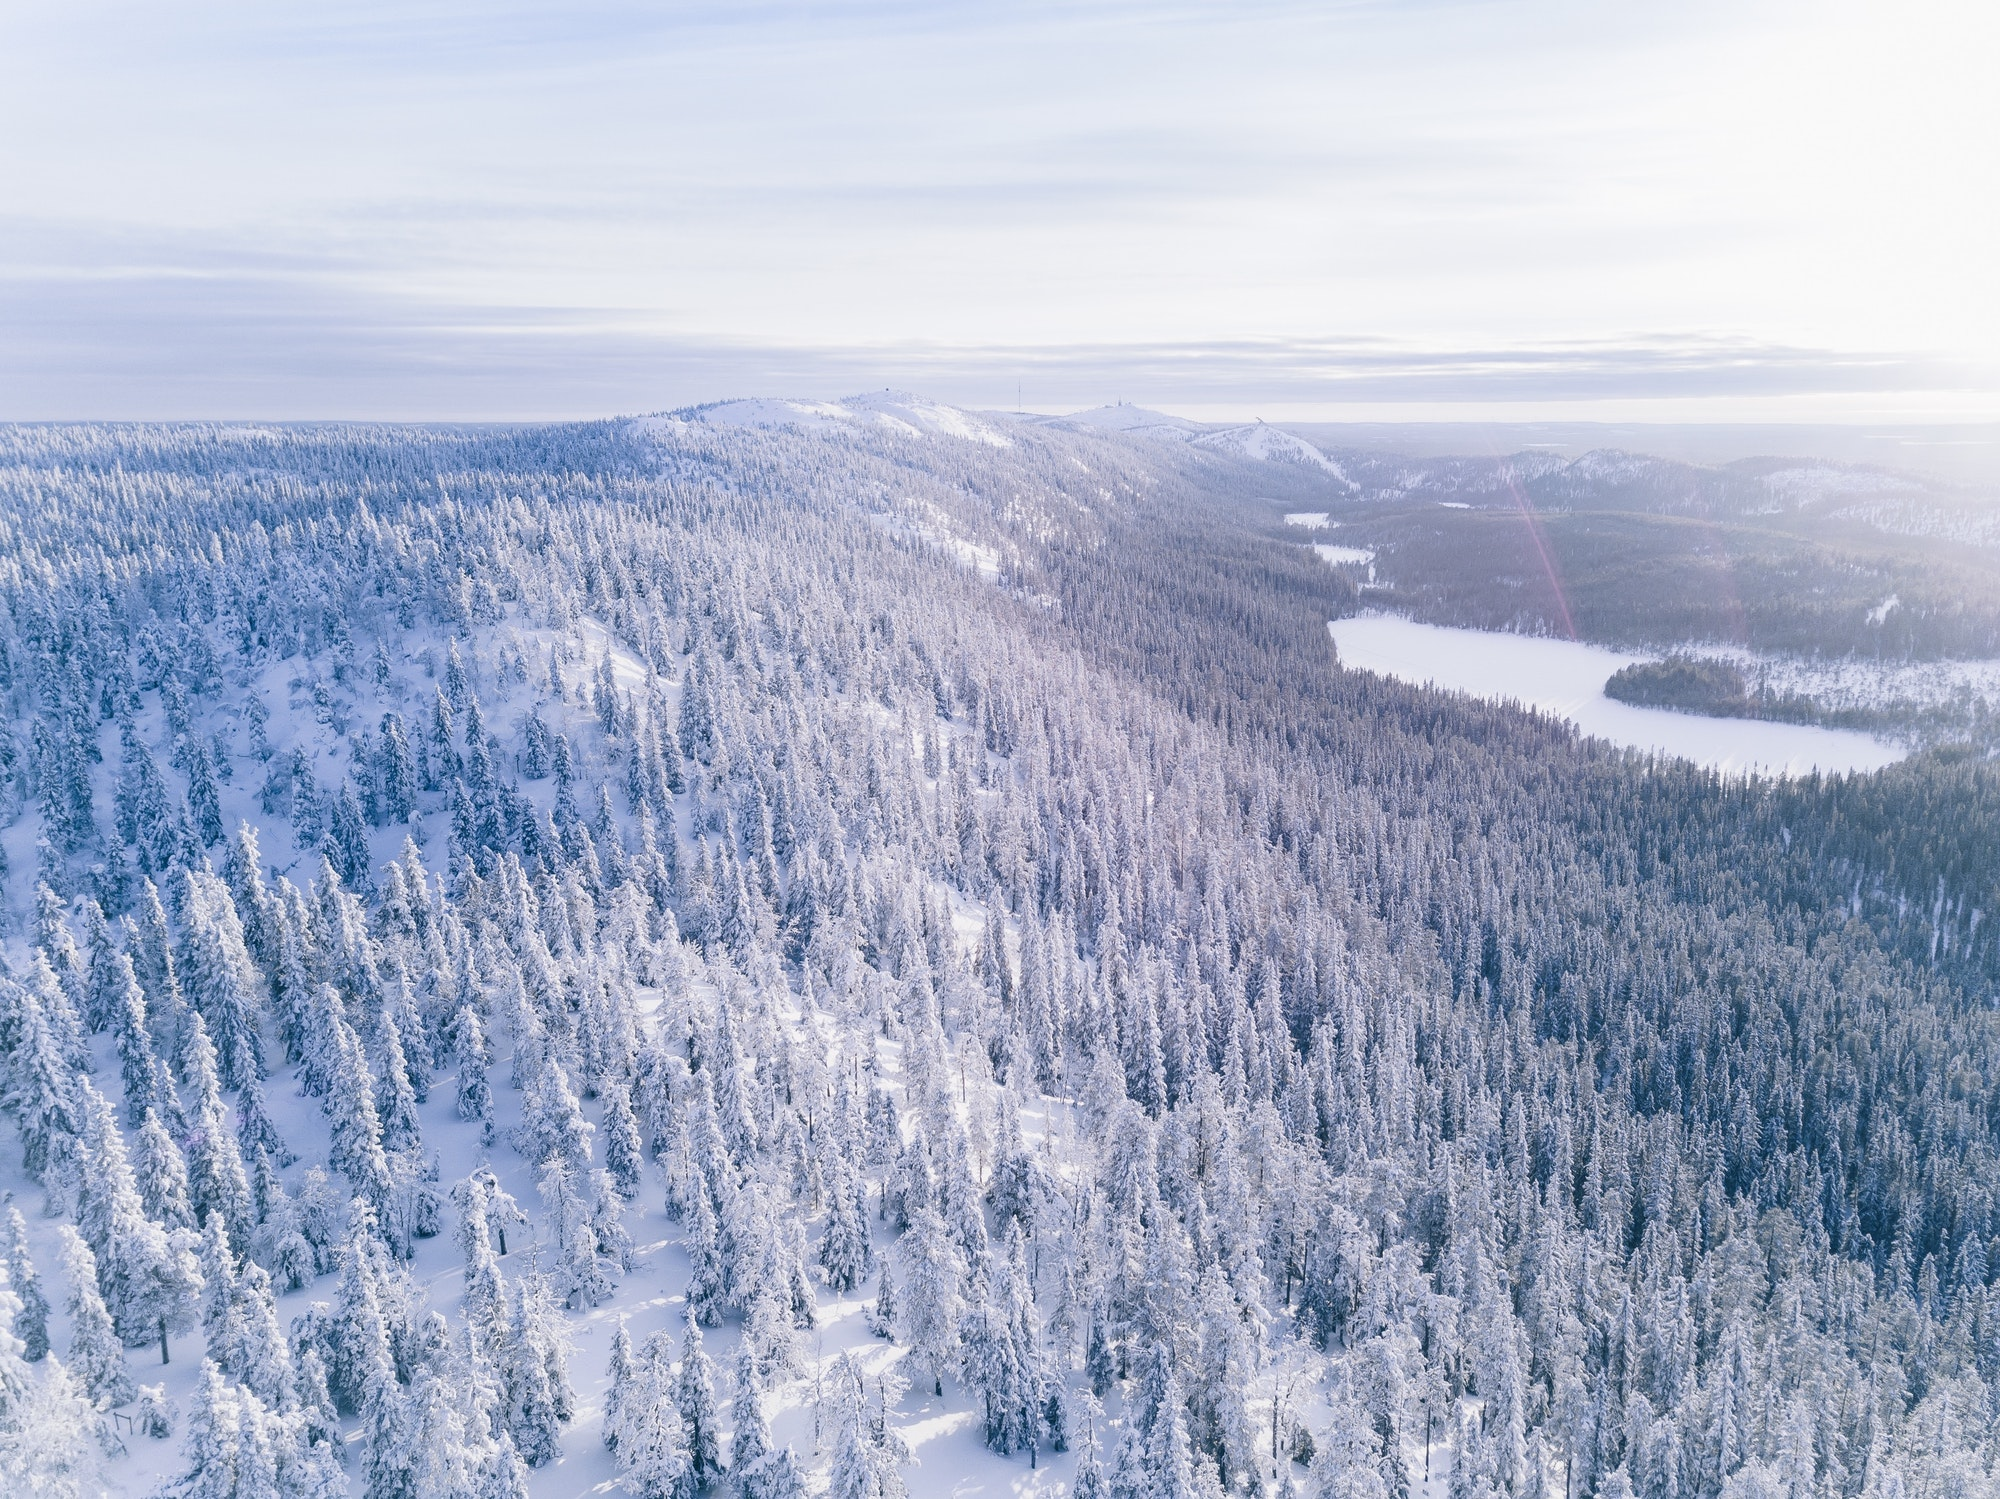 Aerial view of winter forest covered in snow.